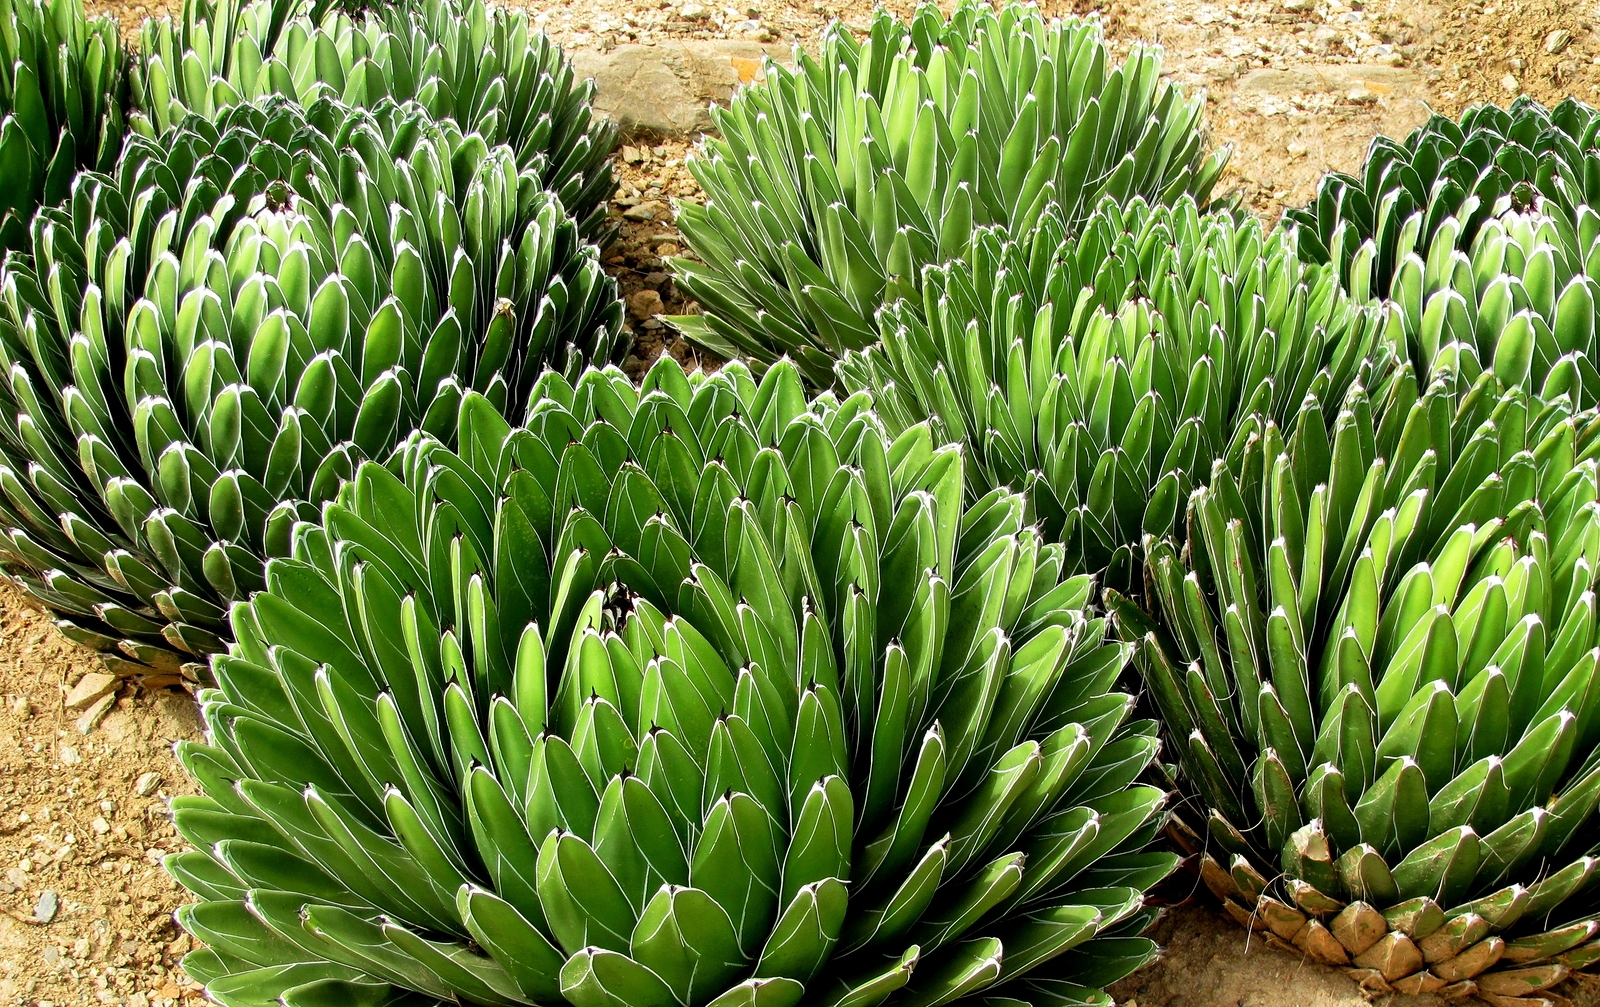 The plant is more commonly used in the manufacture of tequila